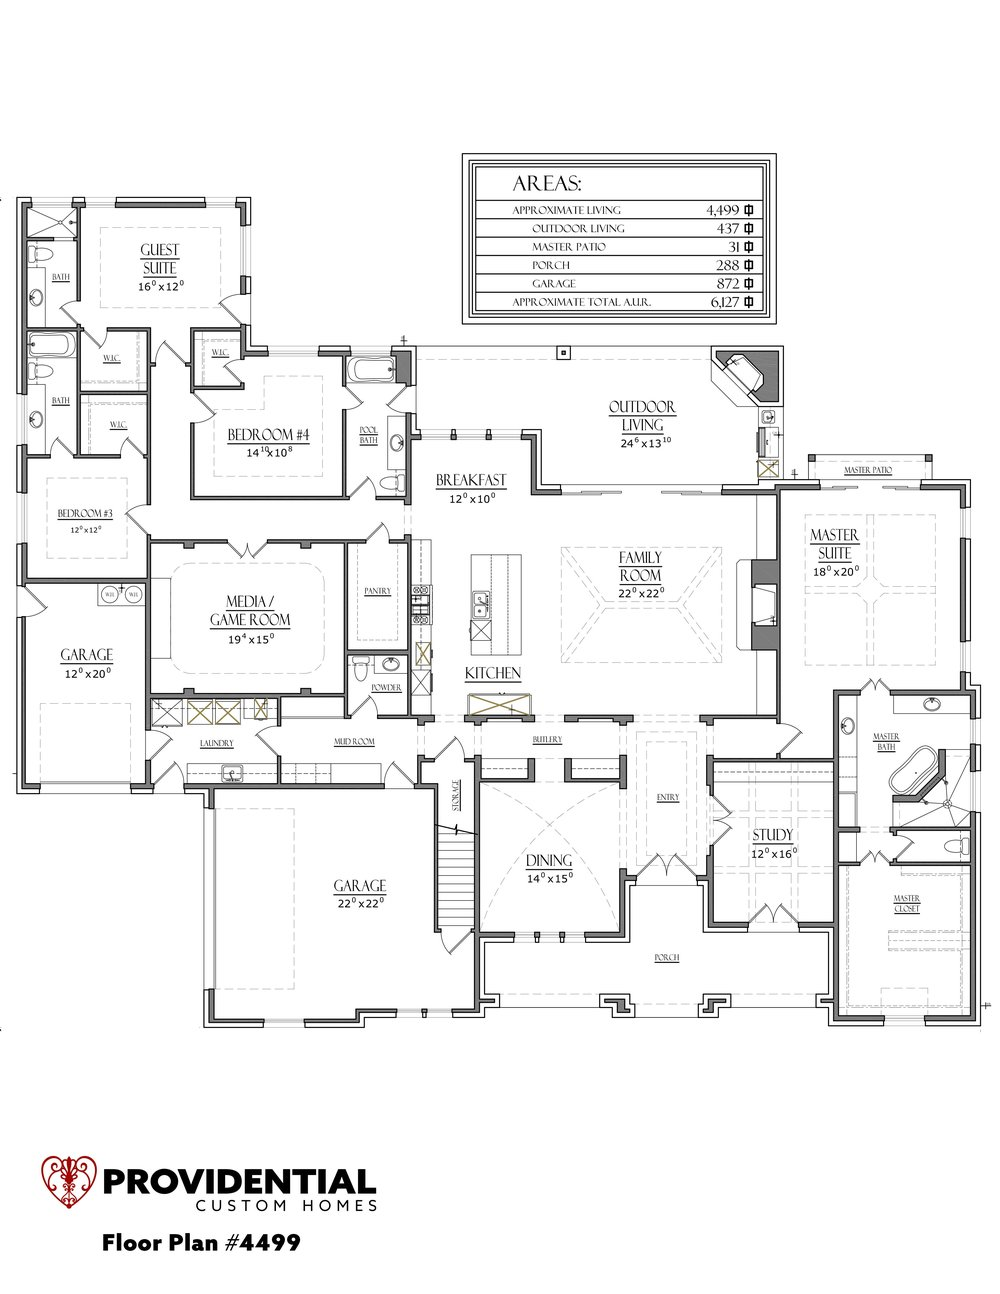 The FLOOR PLAN #4499.jpg